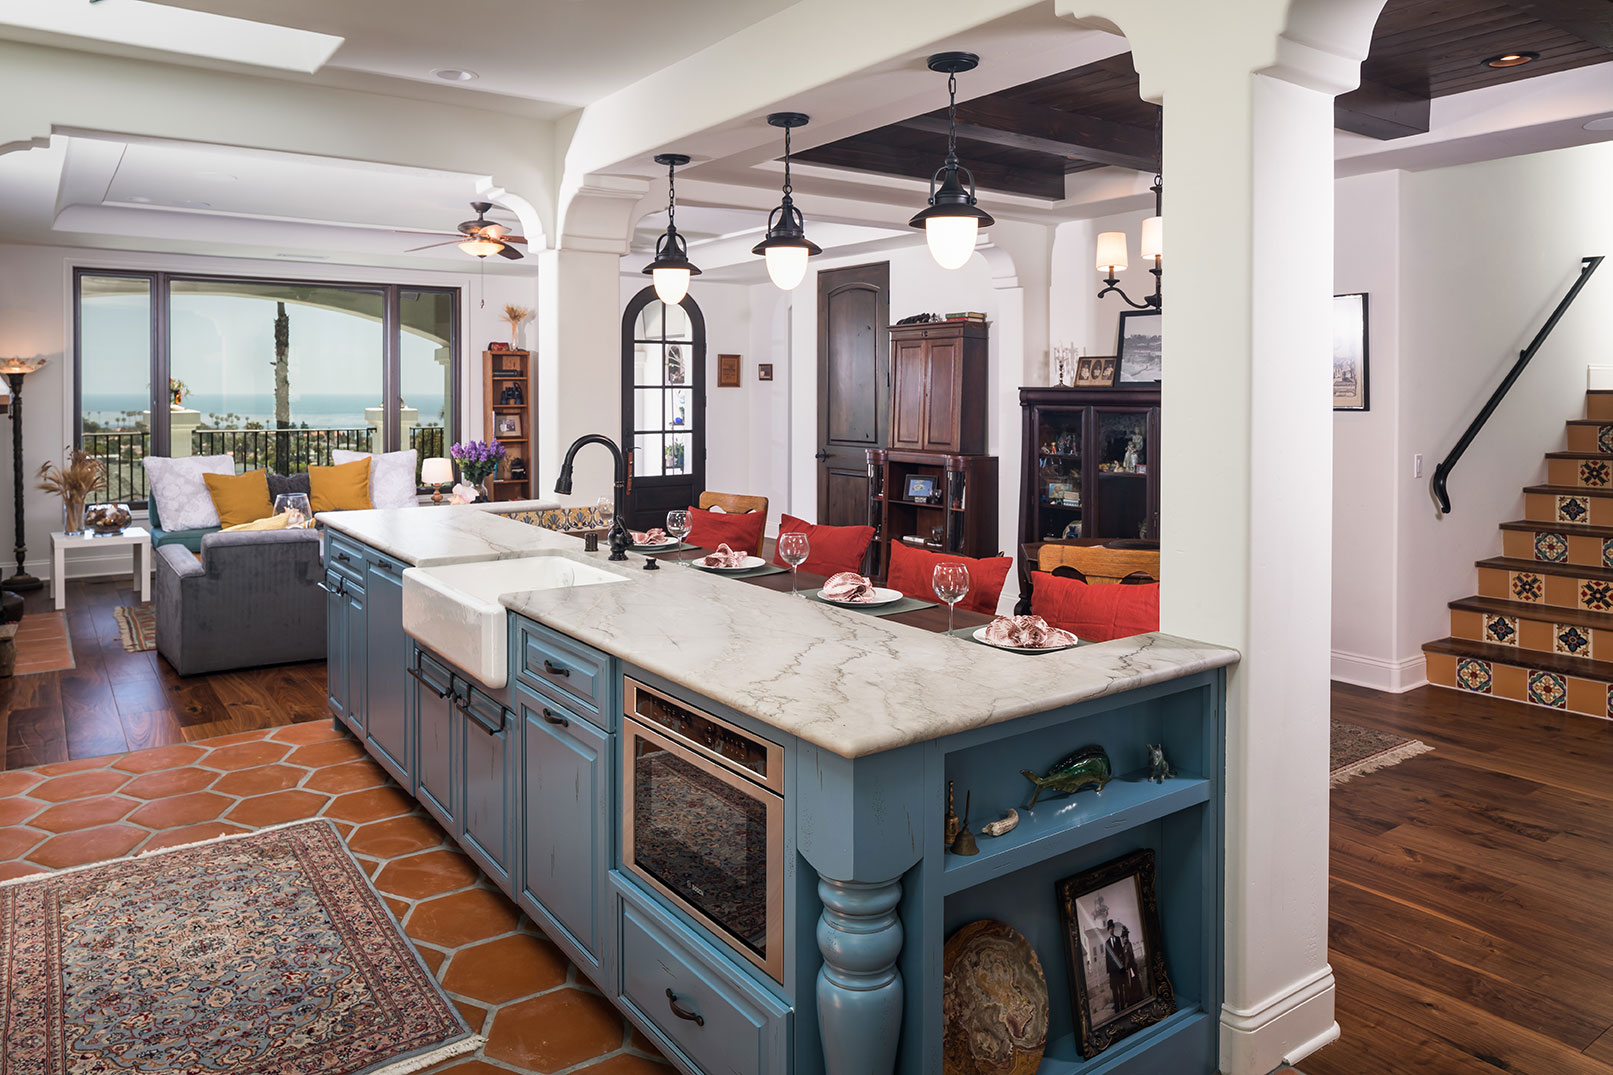 ocean view living area in ocean beach san diego with blue kitchen cabinetry and retro tiles